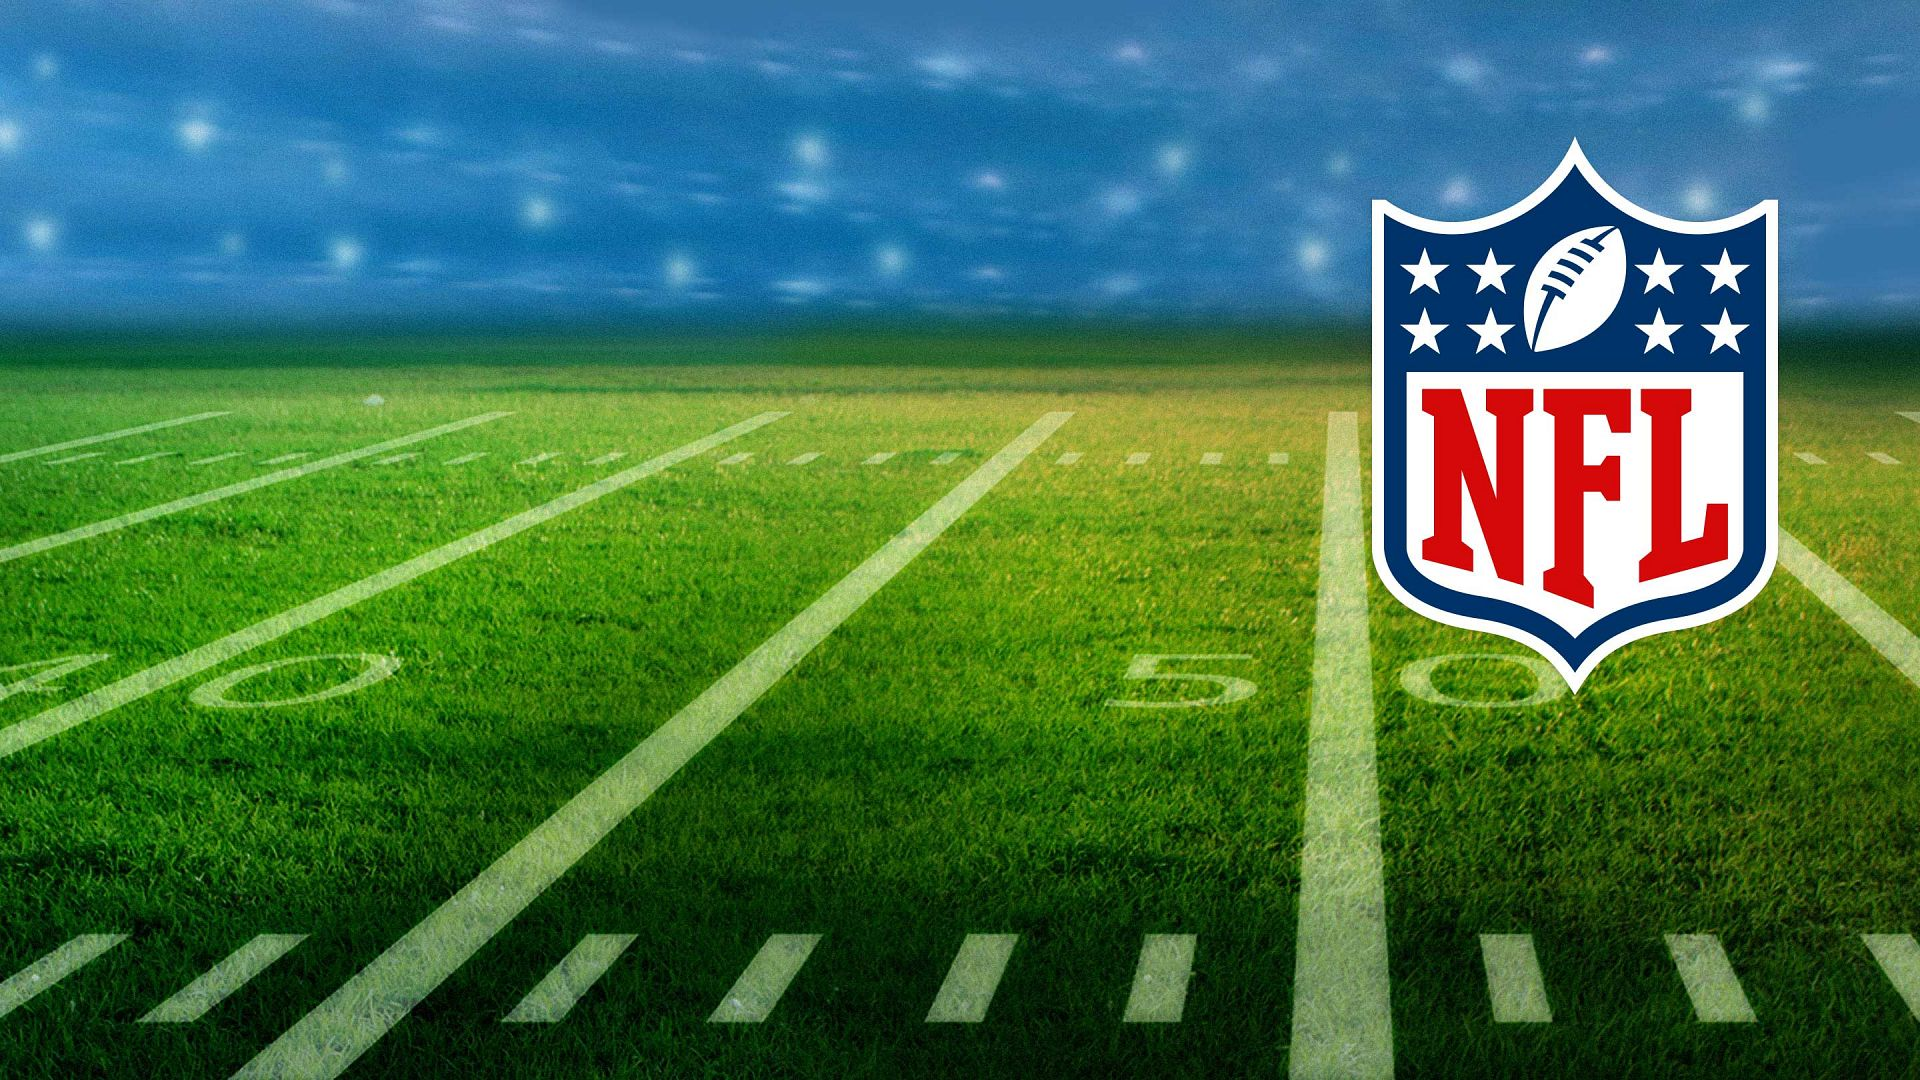 addiction in the NFL